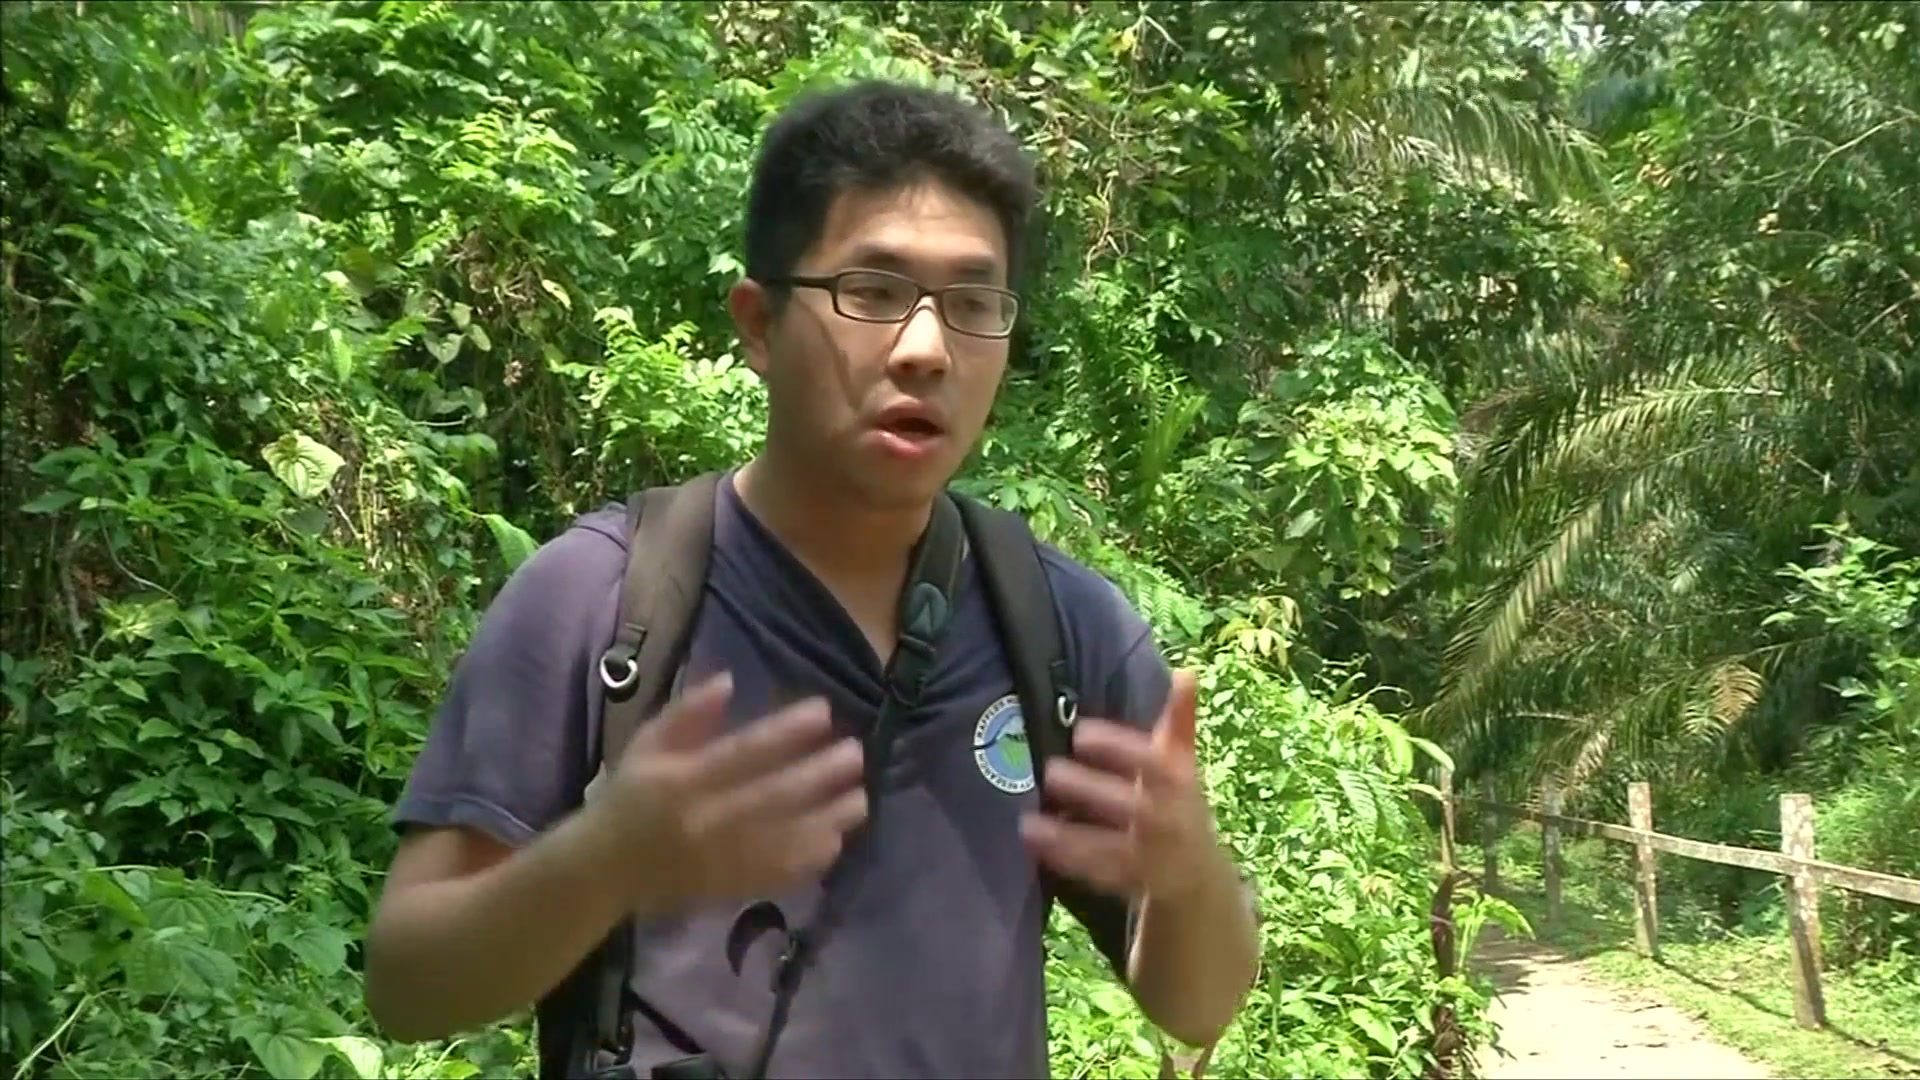 Activists Oppose Tunnel Under Singapore Forest